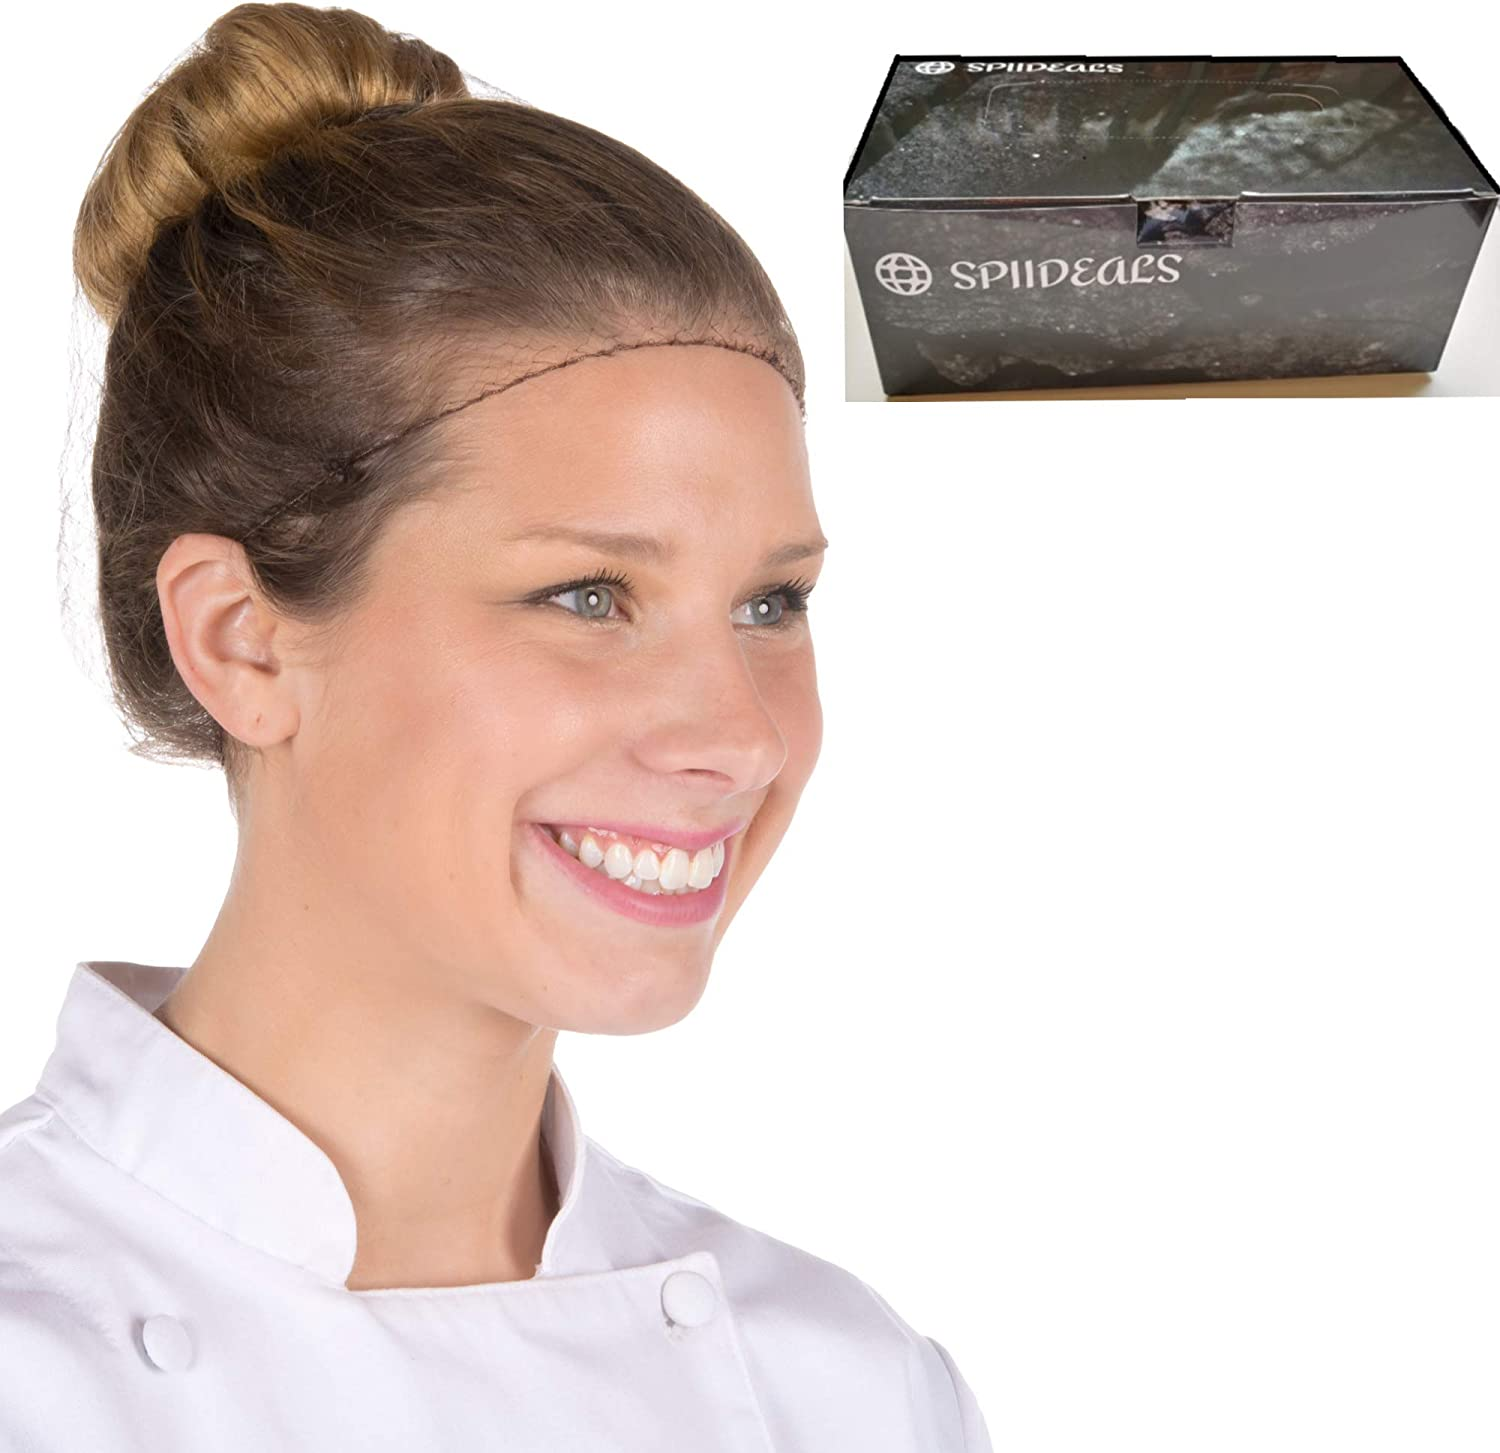 Hairnets for Women for Work Lightweight and Invisible - Disposable Honey Comb Buffet for Cooking or Medical Use with Dispensing Box - 22